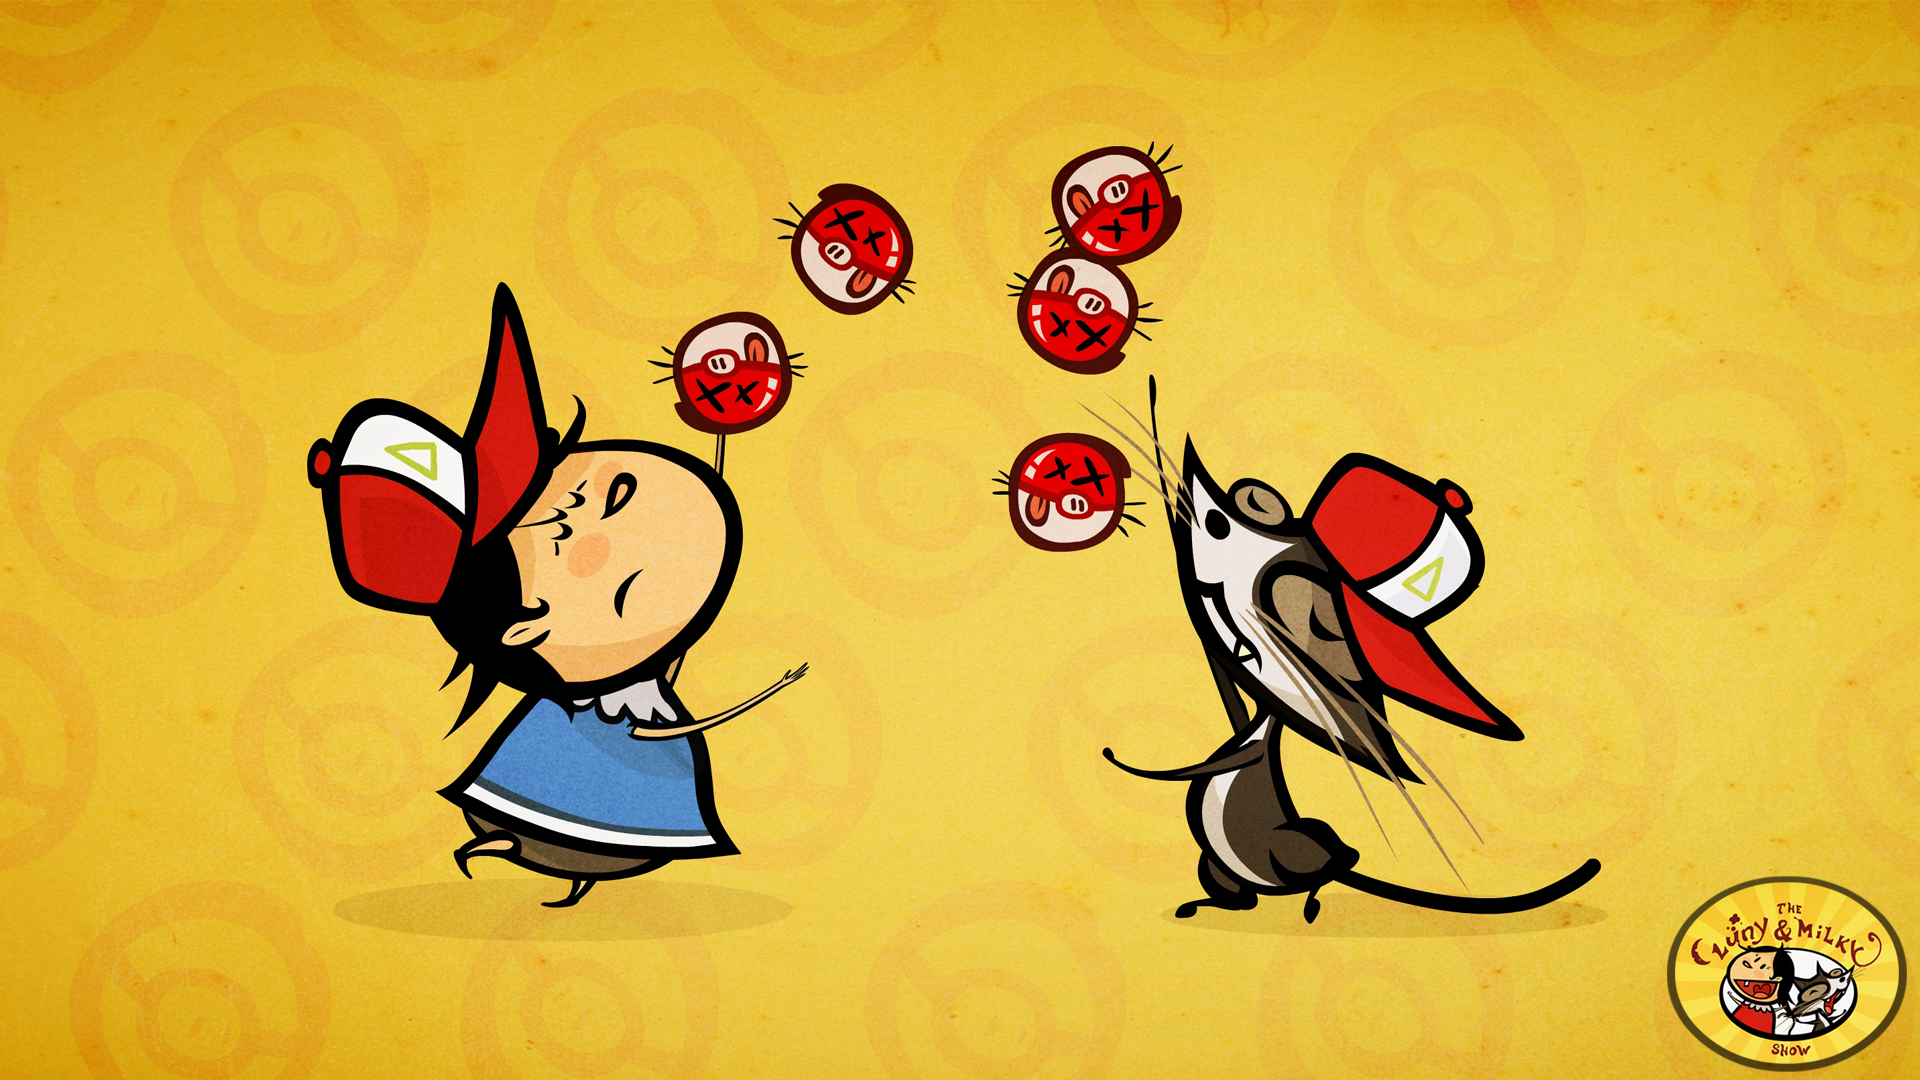 Luny juggling pokeballs with Milky